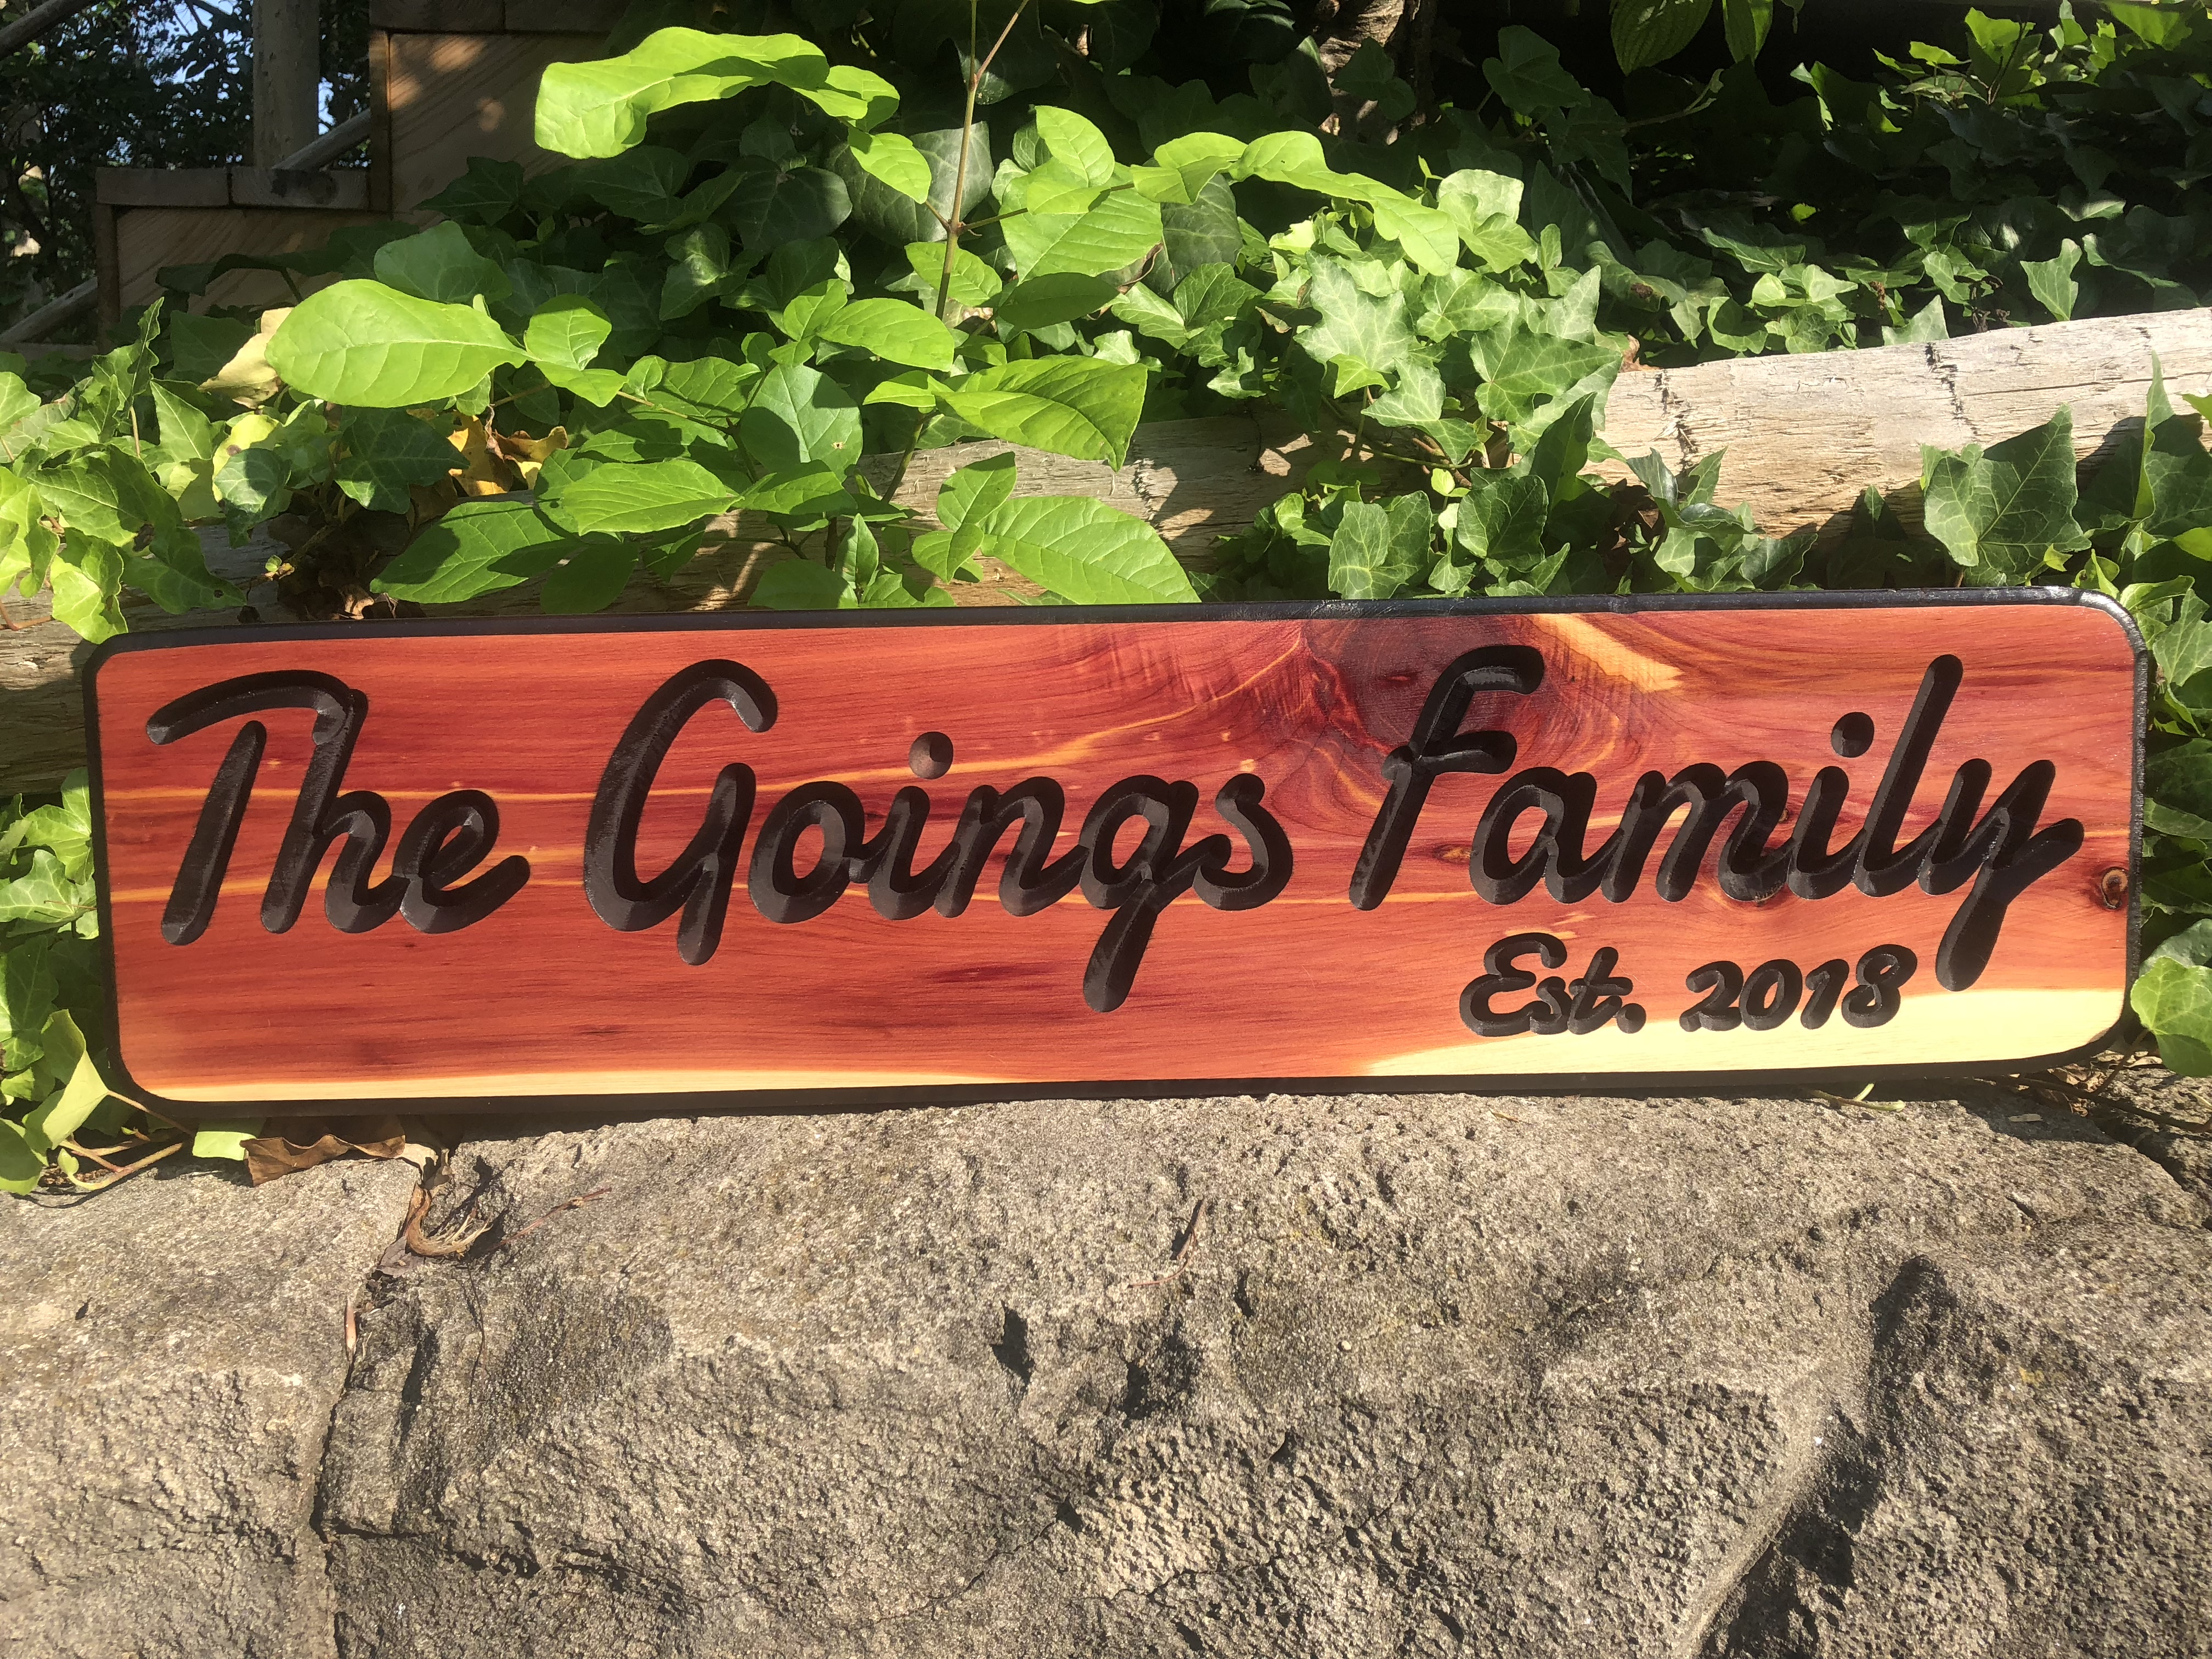 Goings Family Engraved Wood Sign